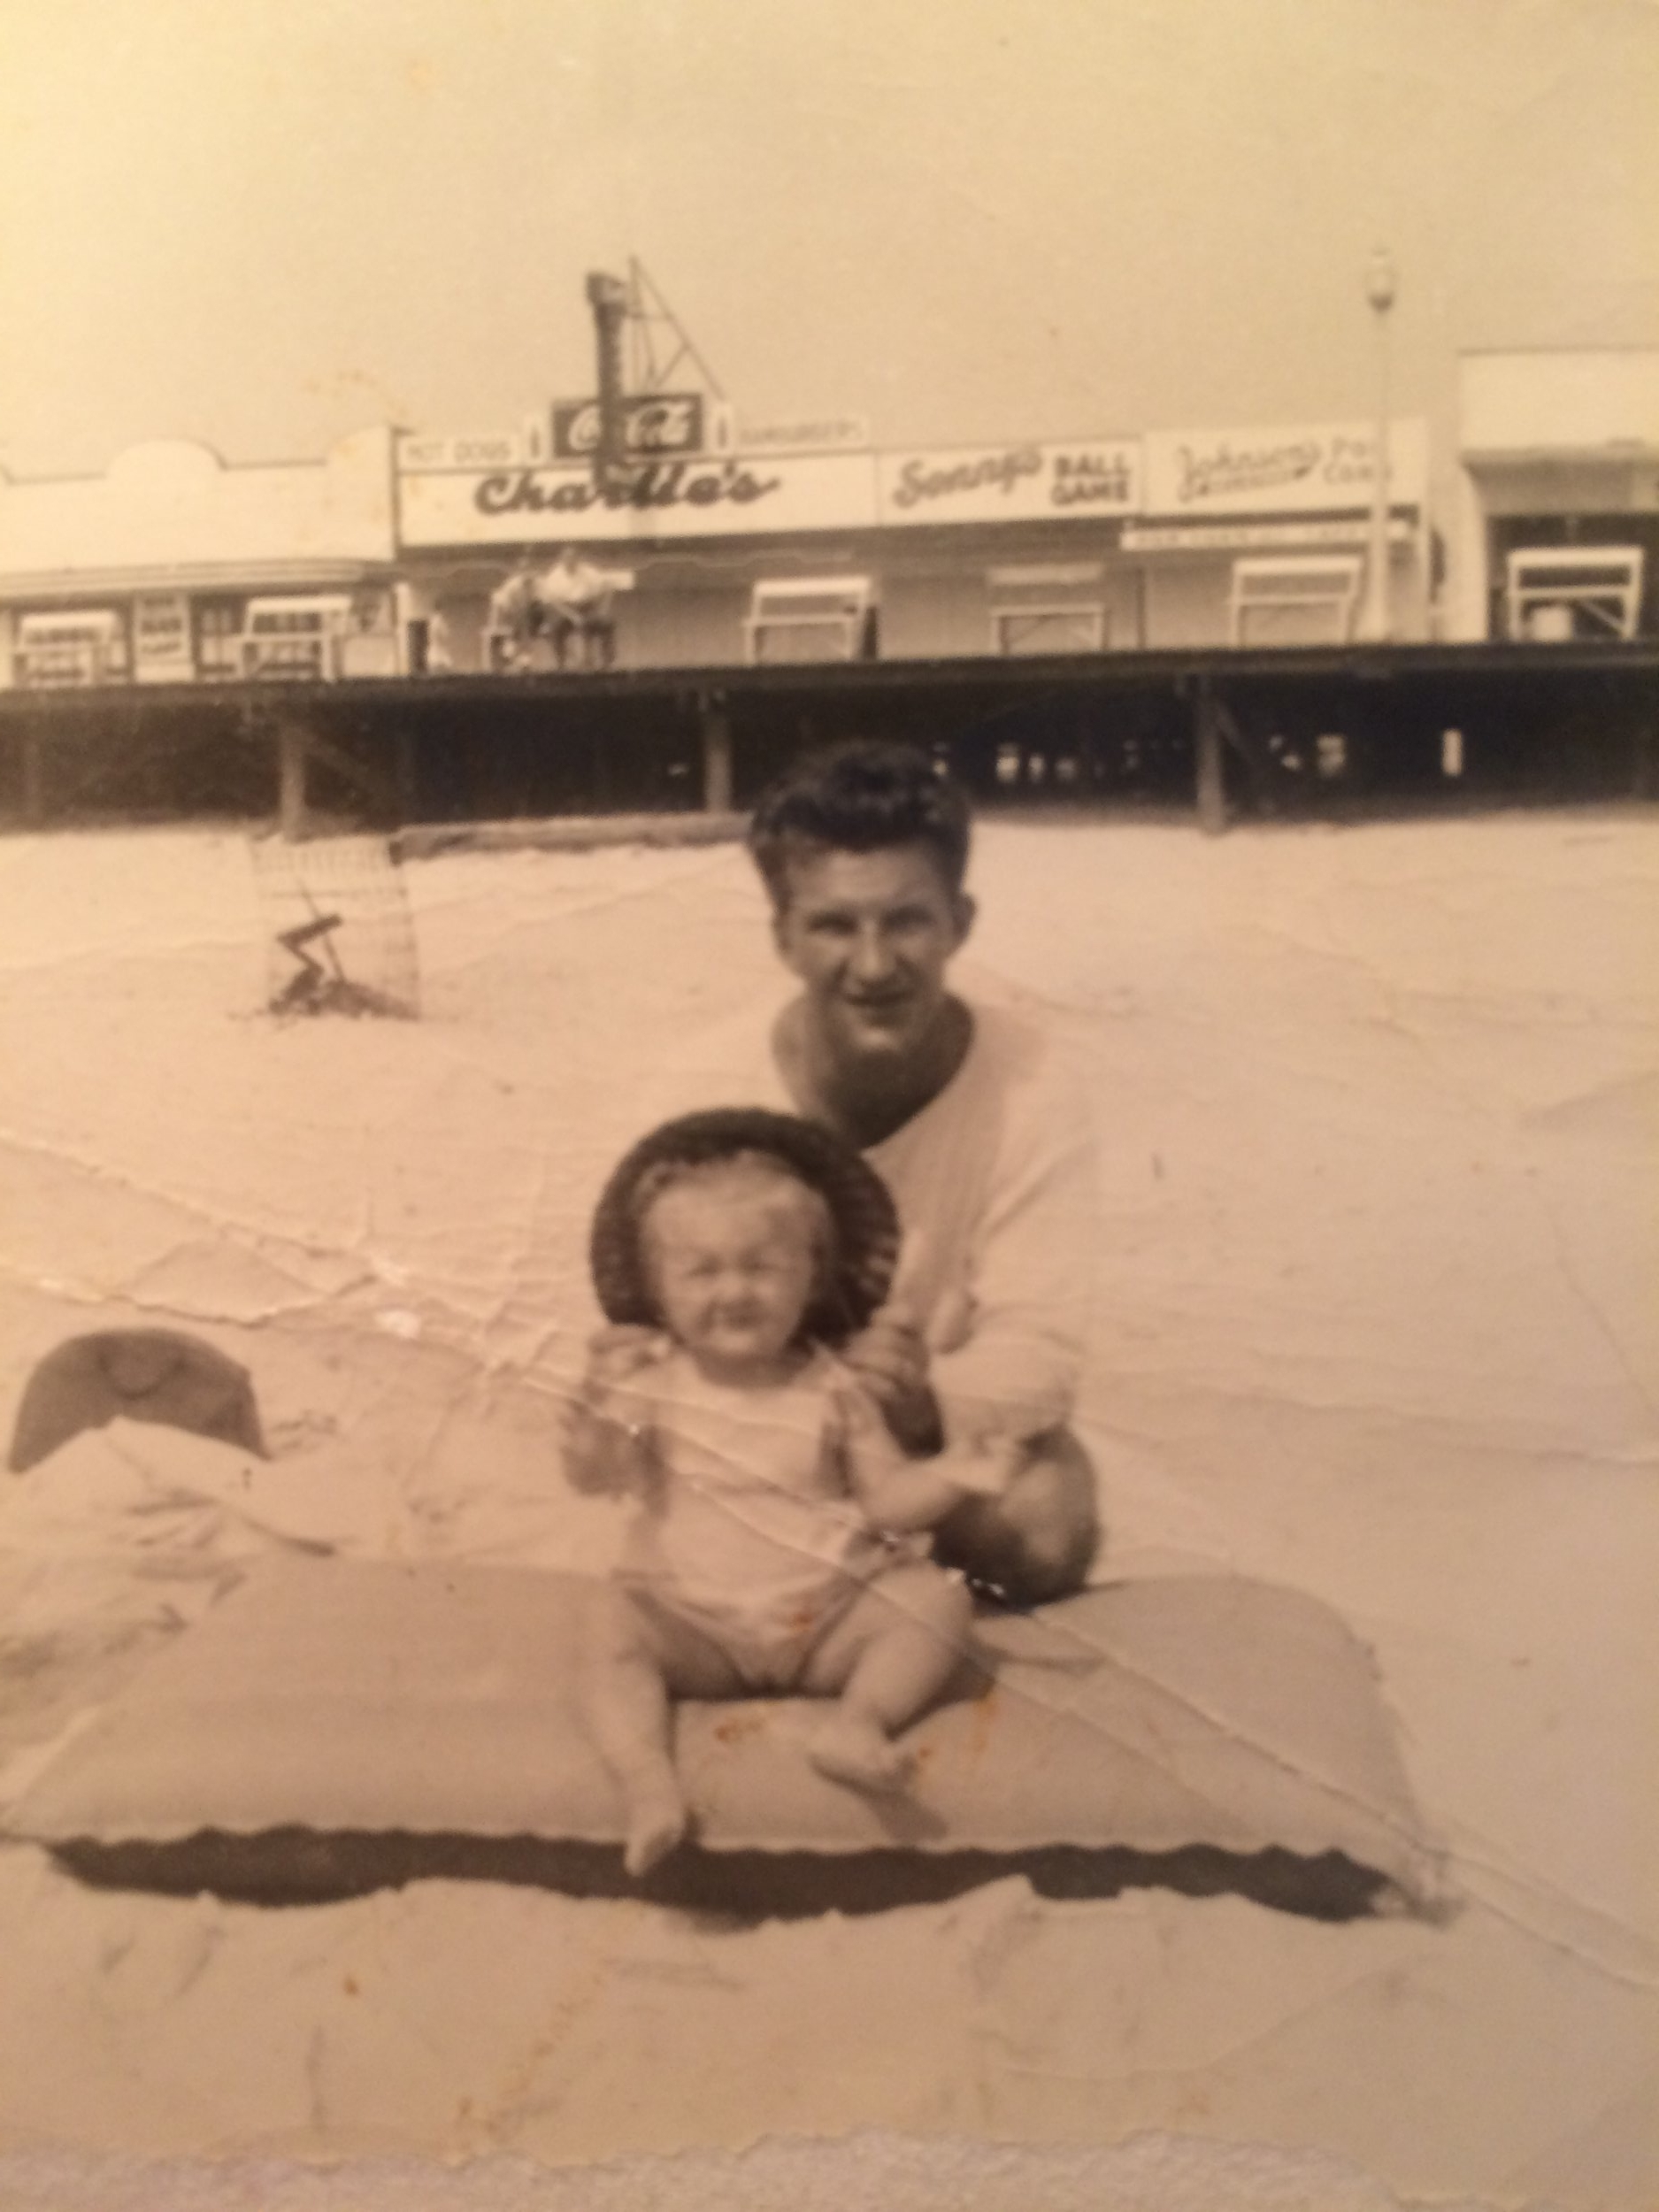 dad & baby me on the beach